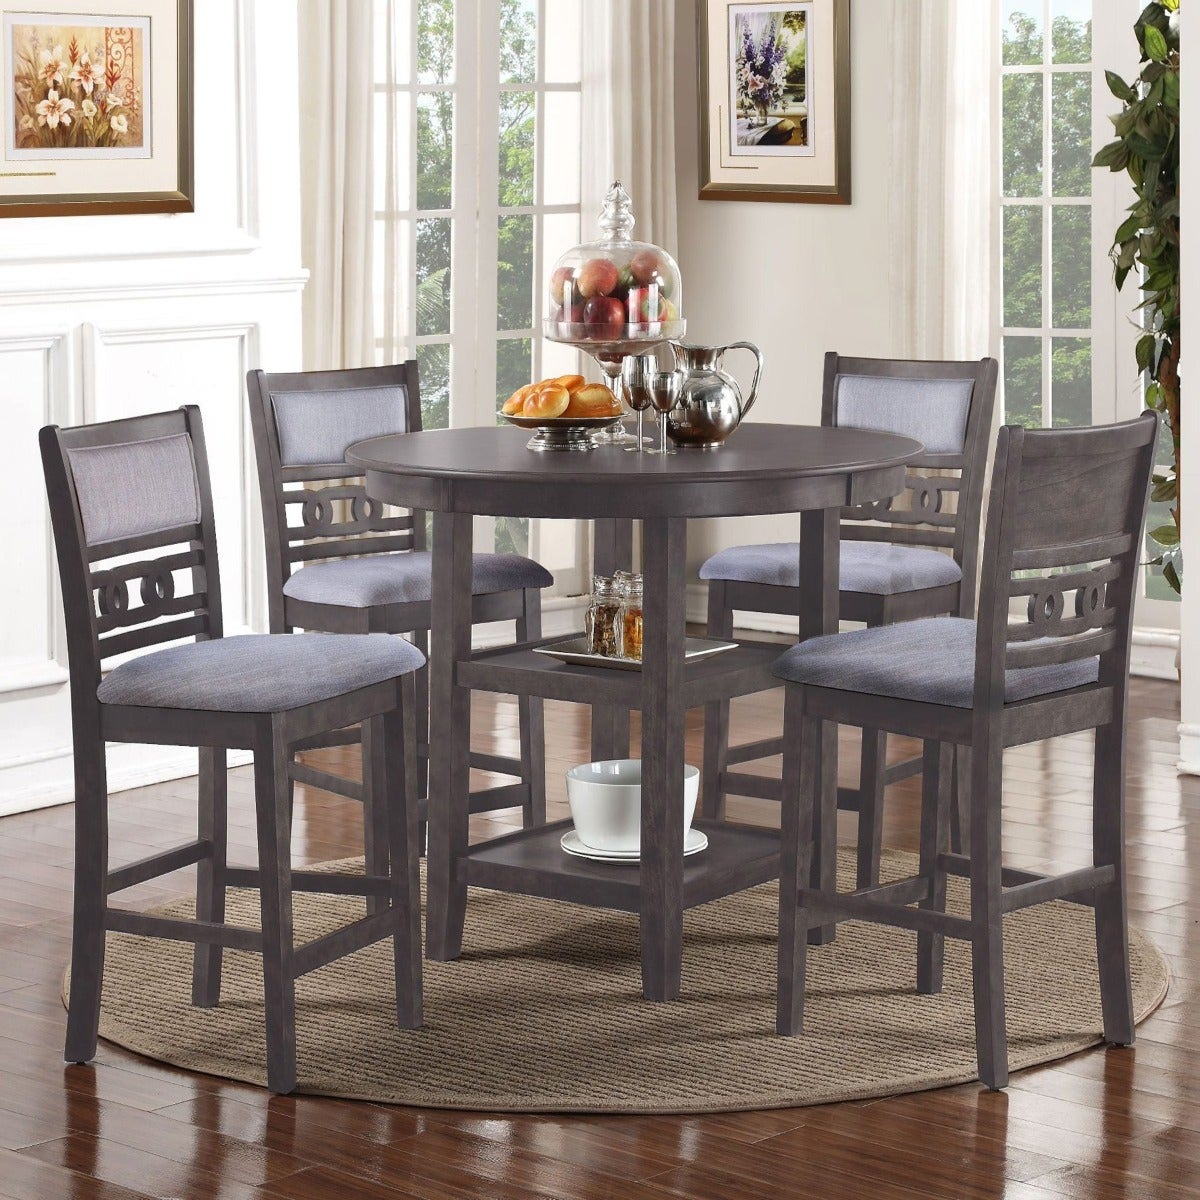 Gina 5 Piece Counter Height Dining Set | Weekends Only Furniture & Mattress